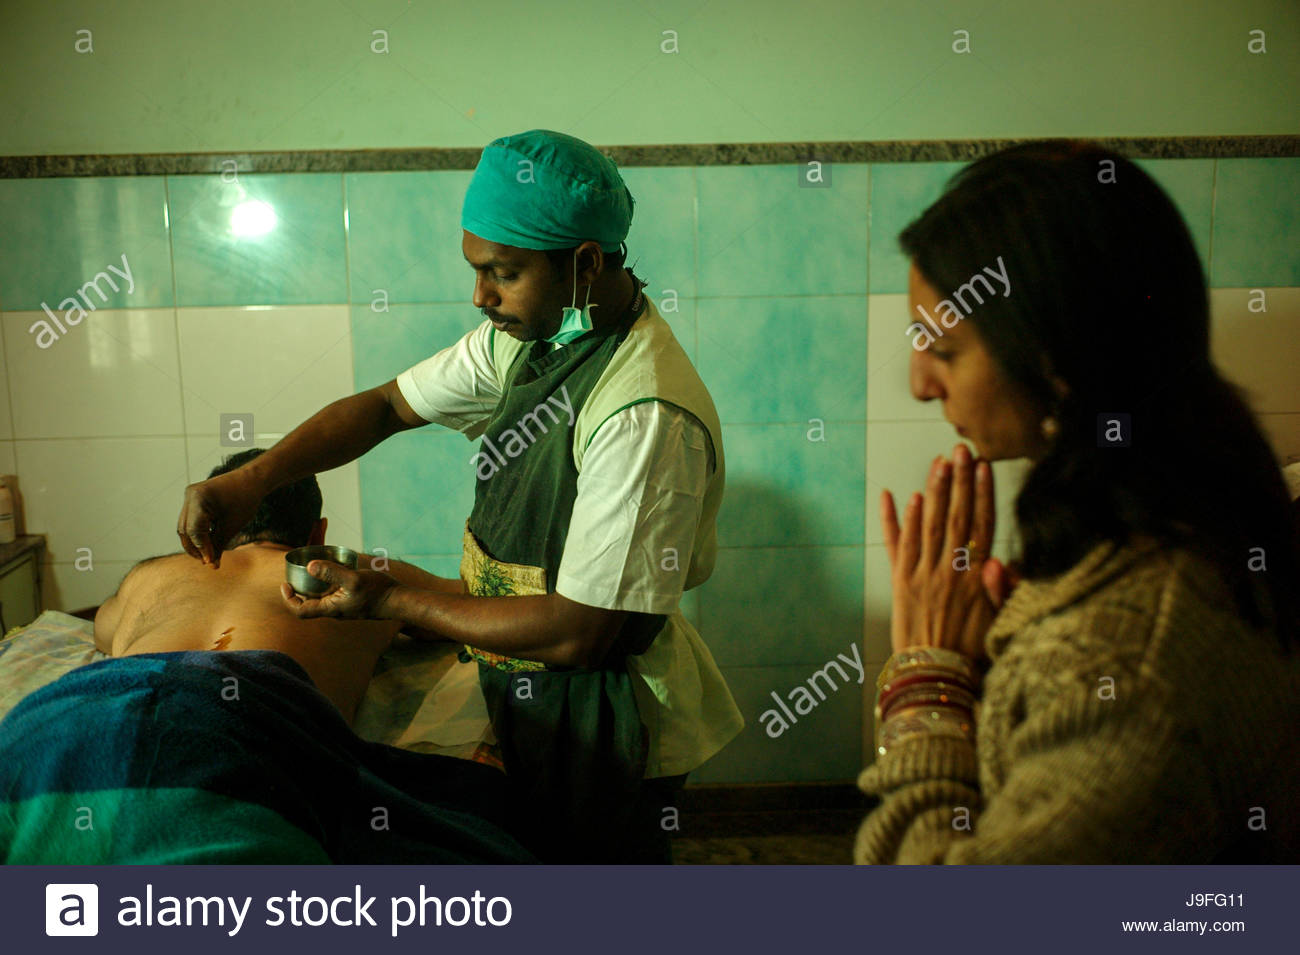 An Ayurvedic practitioner treats a patient for back pain using Patra Pinda Sweda Therapy at an Ayurvedic center, - Stock Image